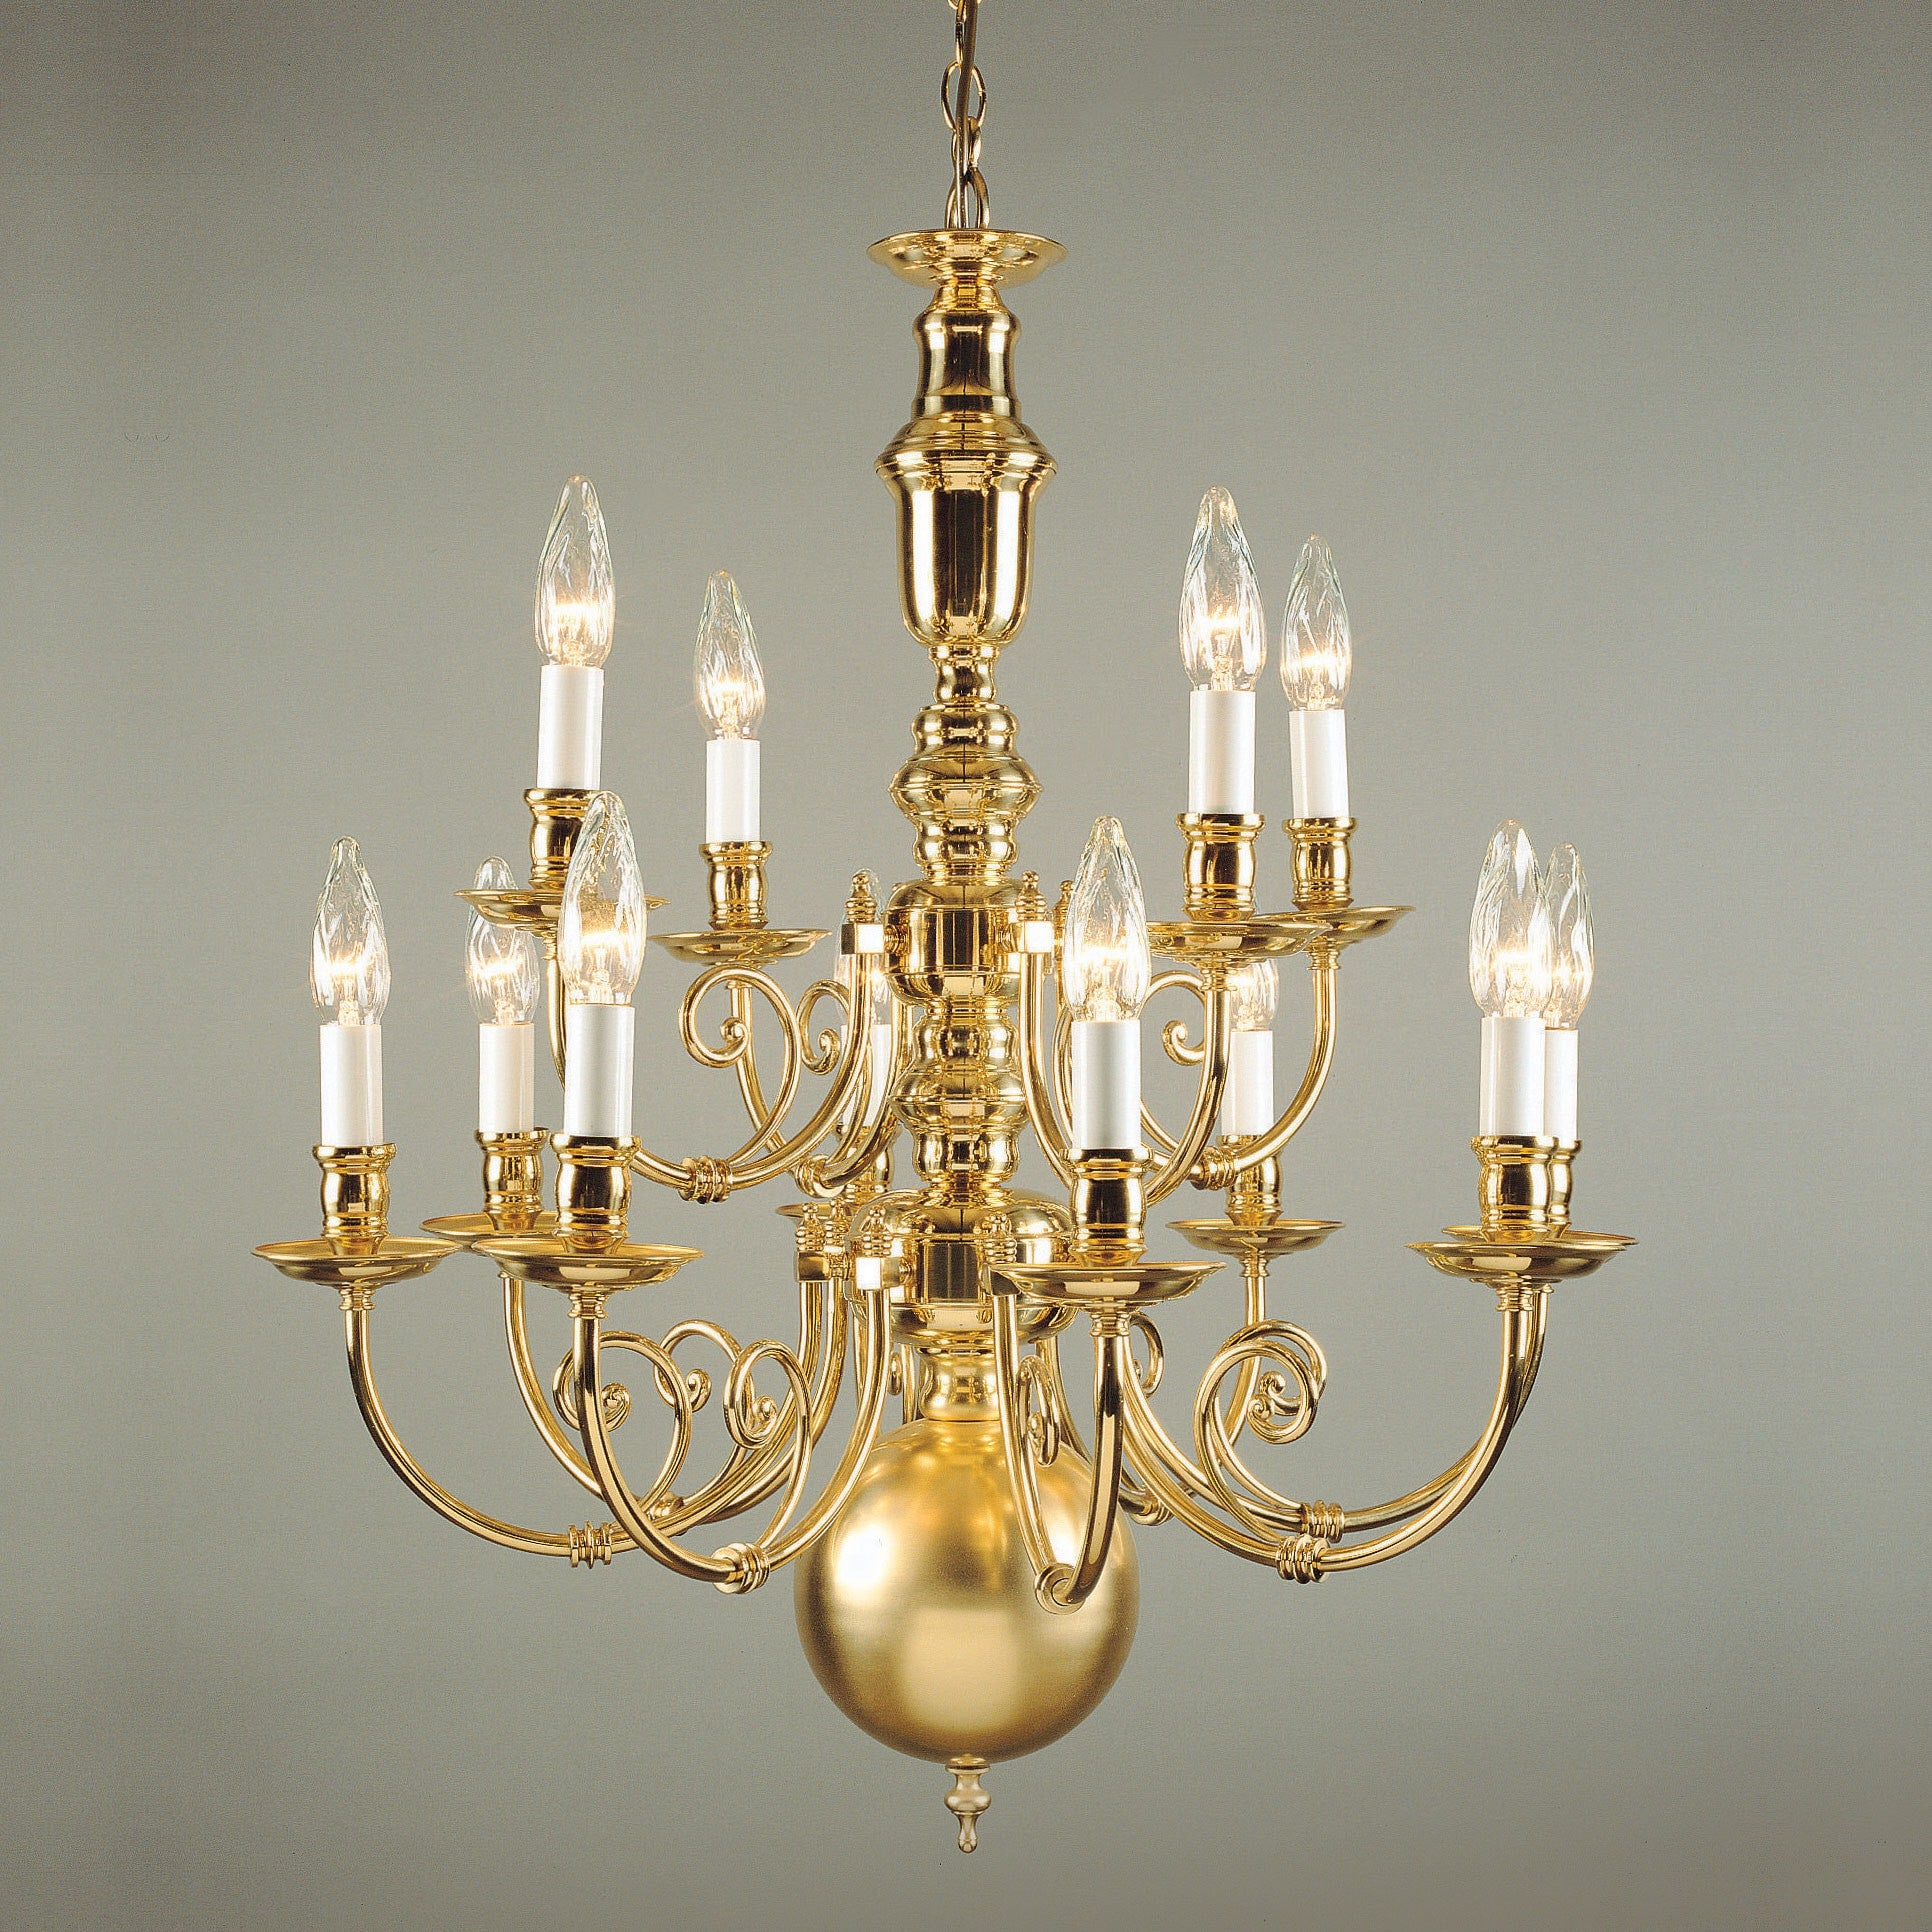 style lamp ingenuity top edison fab old bulb antique co bulbs chandelier filament light